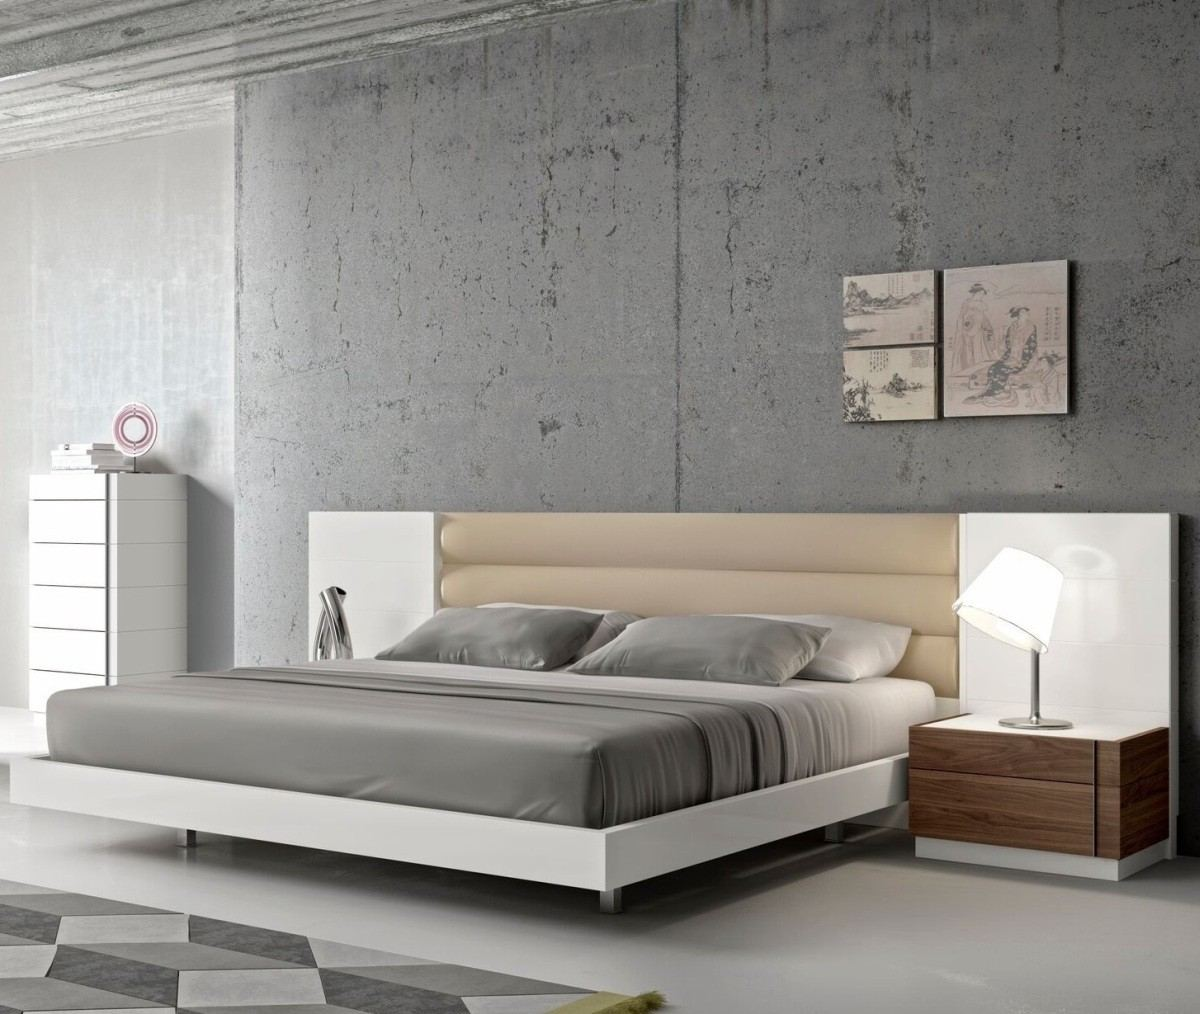 Beige And White Luxury Bedroom Furniture Set Vincenza Sofadreams